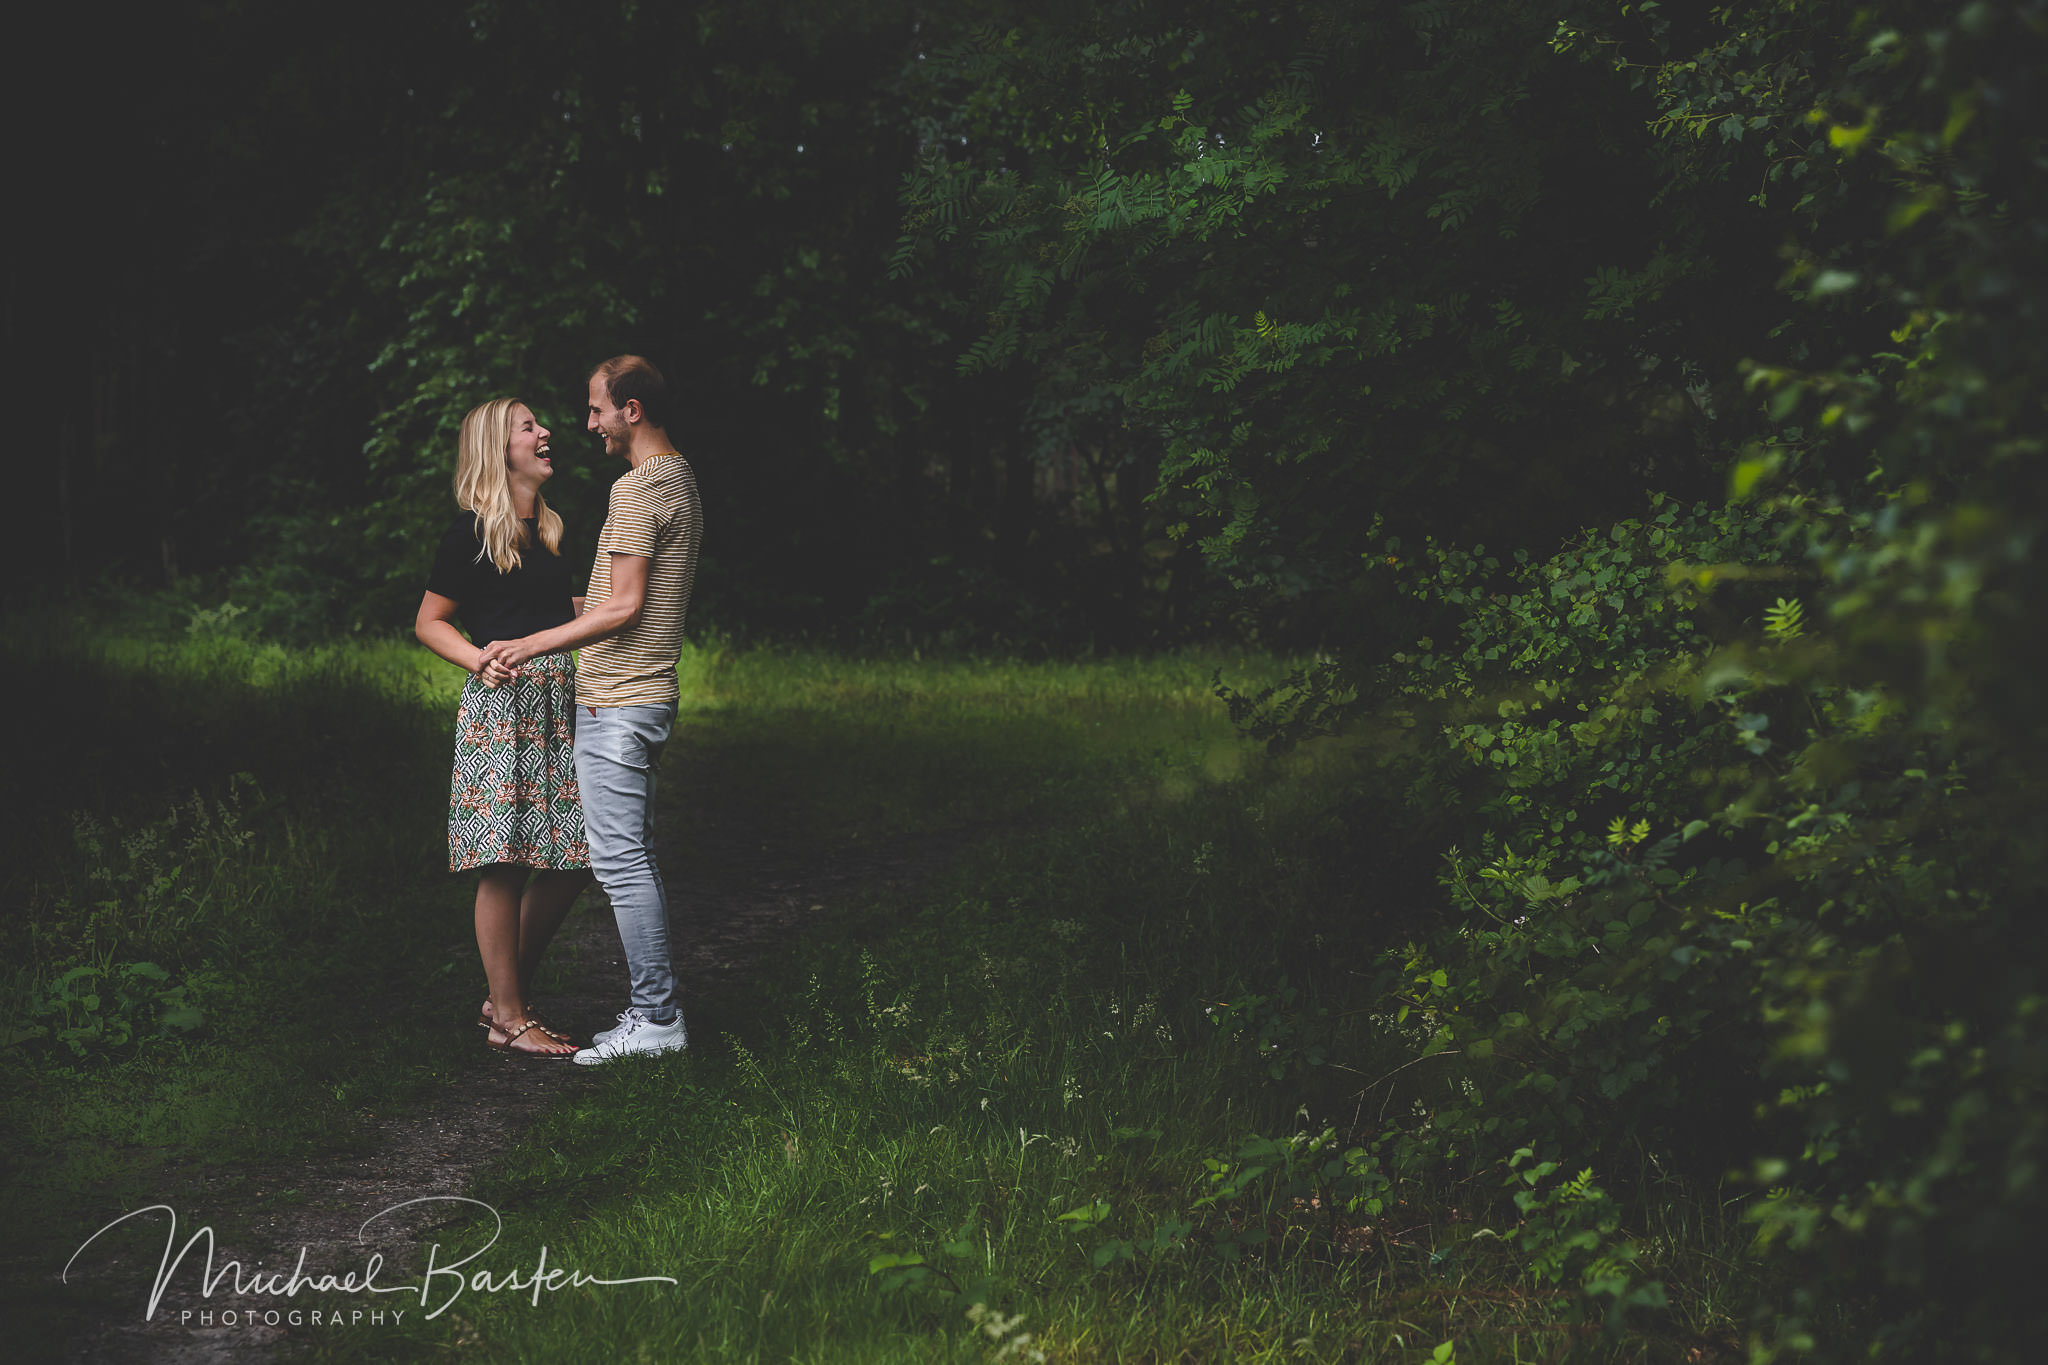 Loveshoot Grada & Roy - Wapenveld